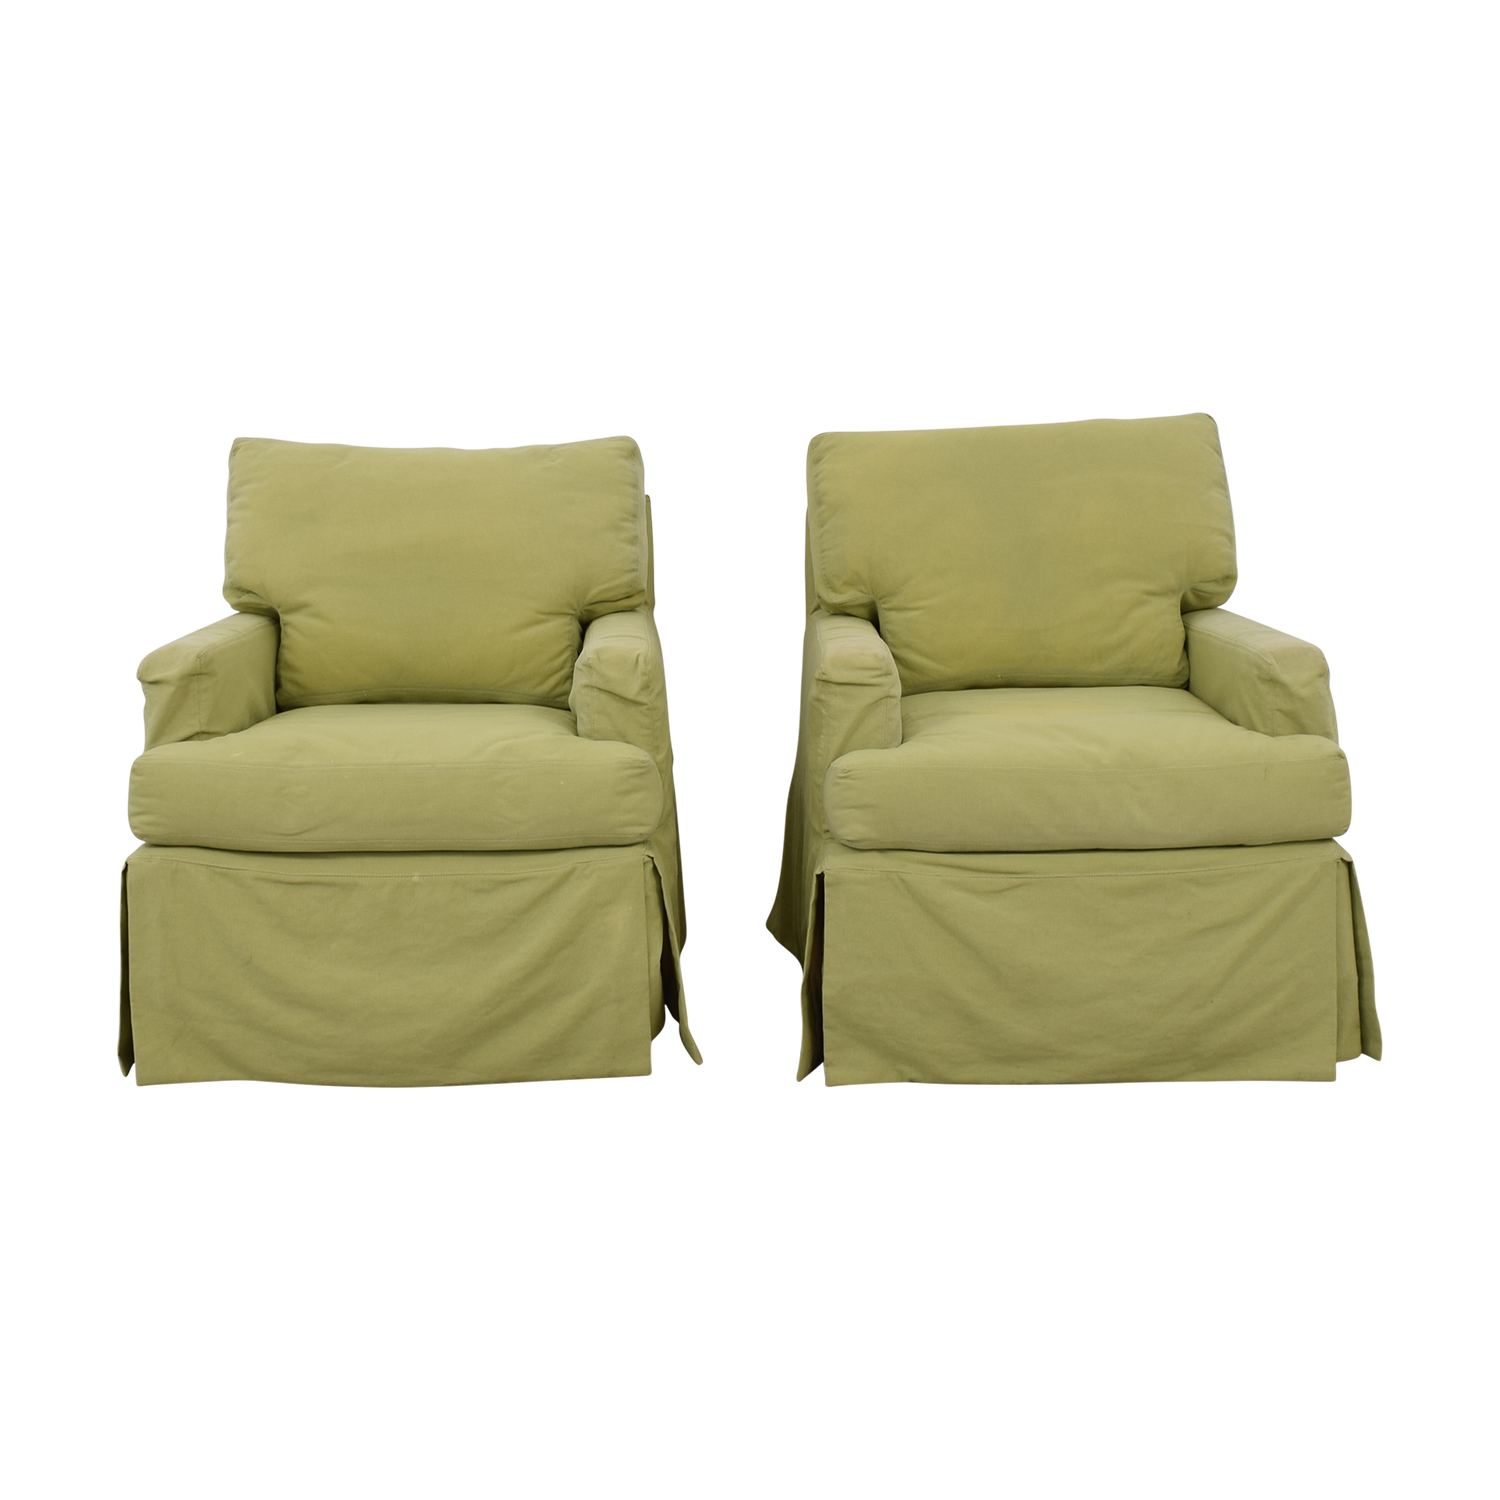 Rocking Accent Chairs 88 Off Crate Barrel Crate Barrel Green Rocker Accent Chairs